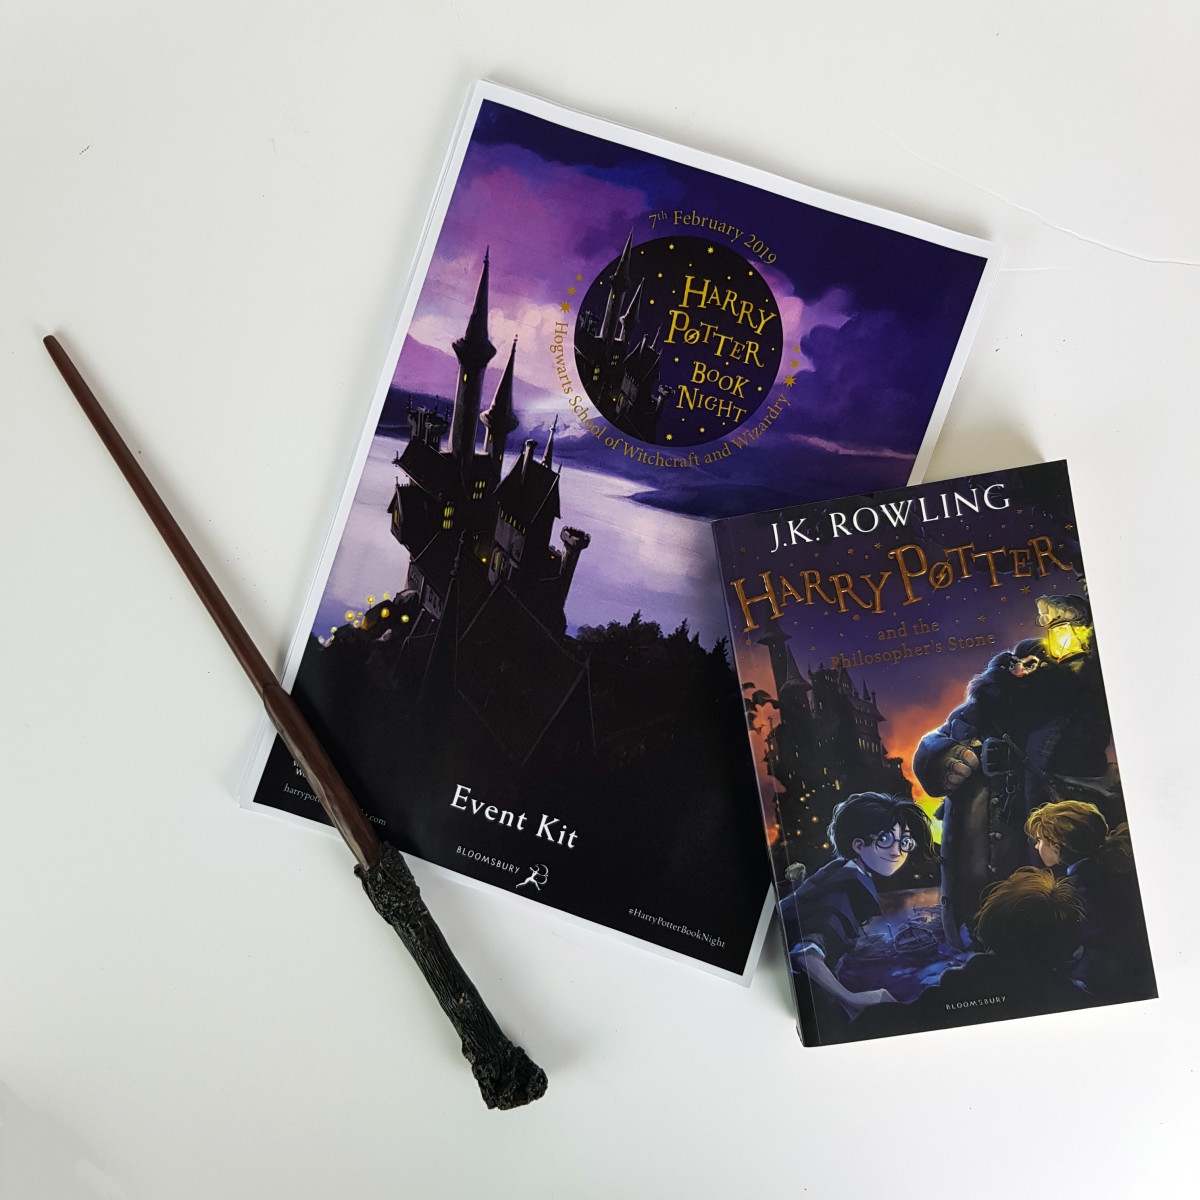 Harry Potter Book Night 2019 Everything You Need To Know